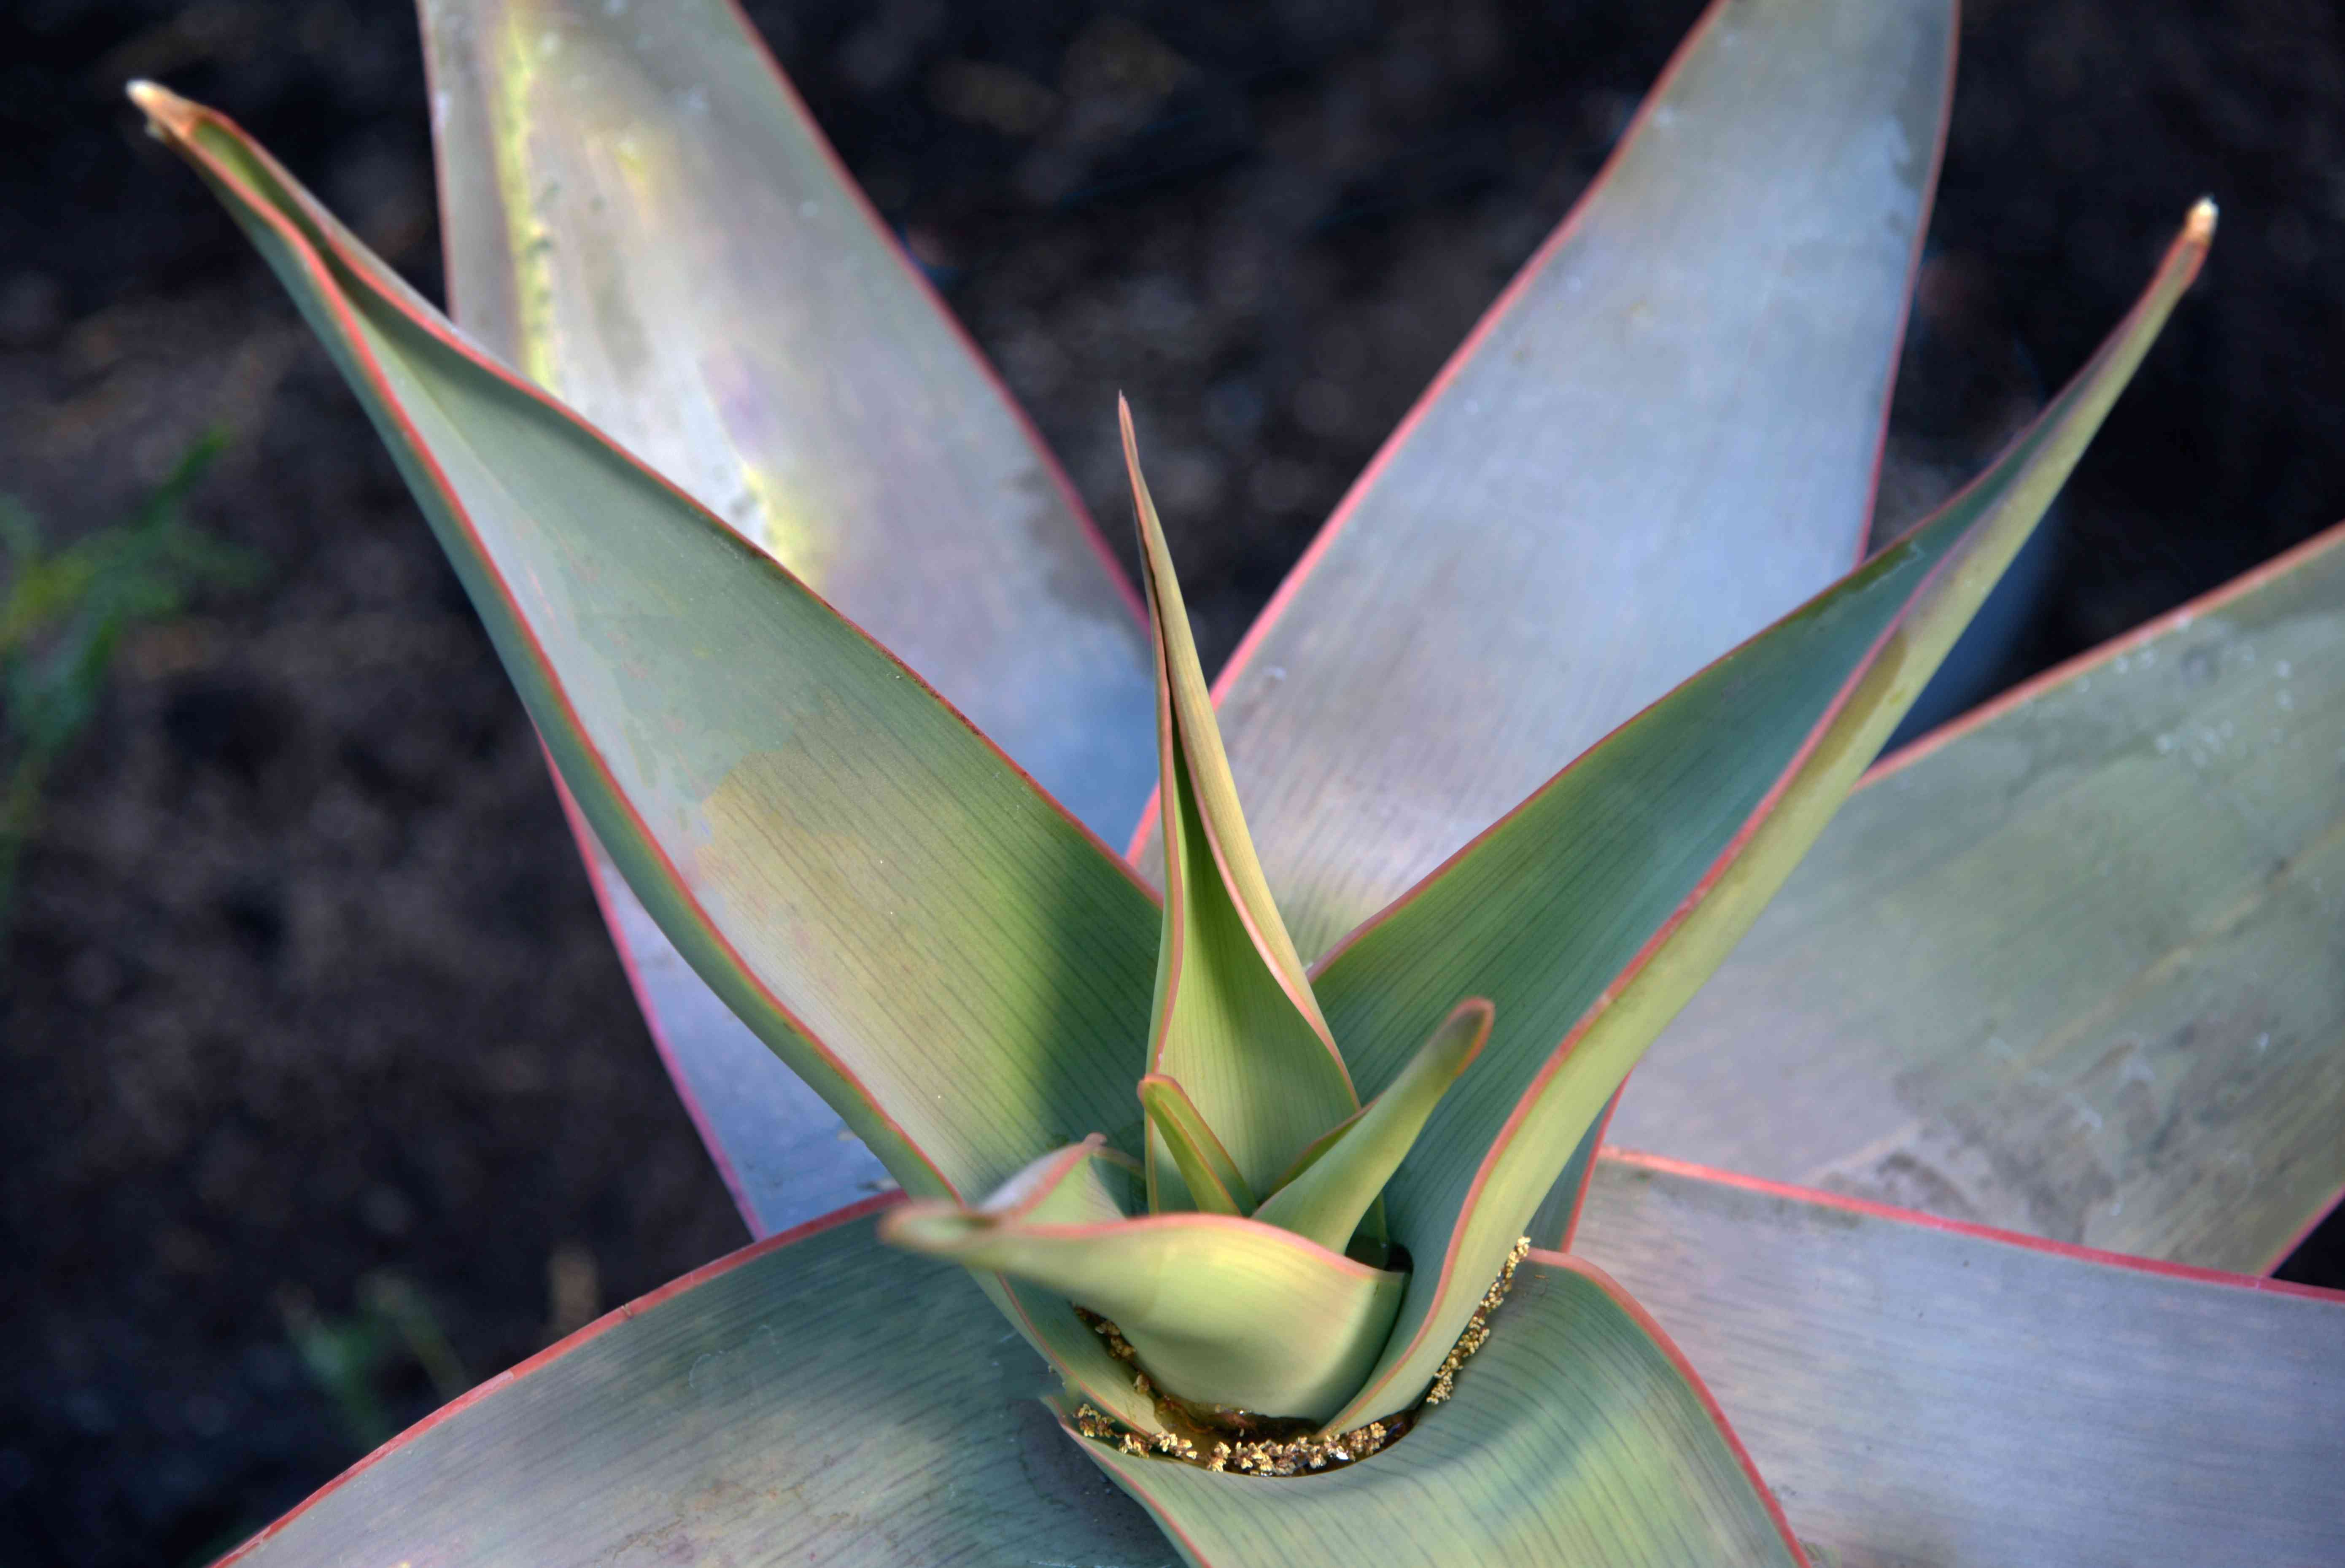 Coral aloe with wide thick leaves trimmed in pink closeup